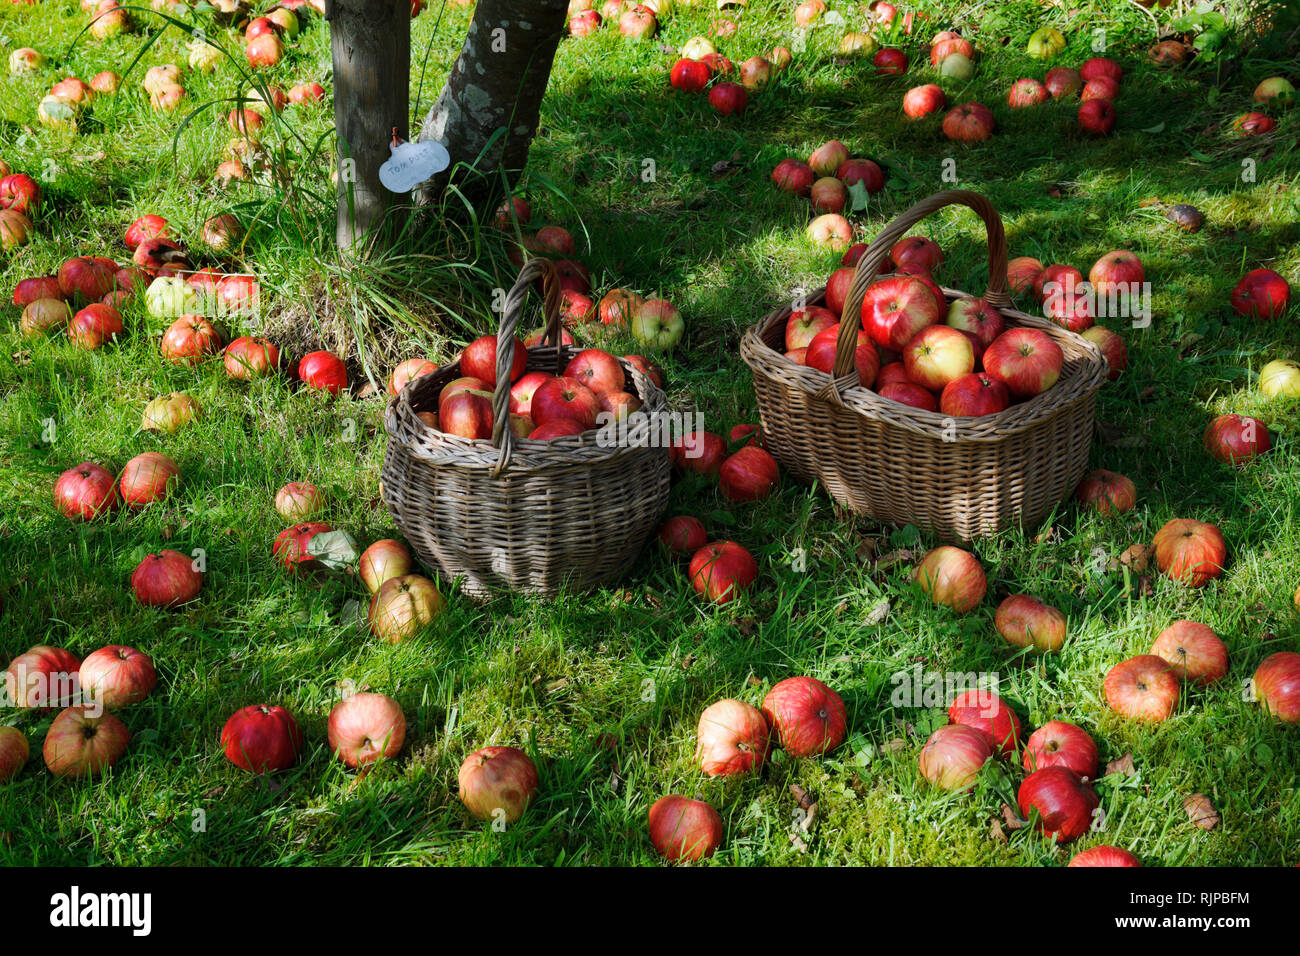 Windfall apples apples lying in grass below tree in a garden orchard in Gwynedd North Wales. The variety, Tom Putt, is a dual purpose apple. Stock Photo